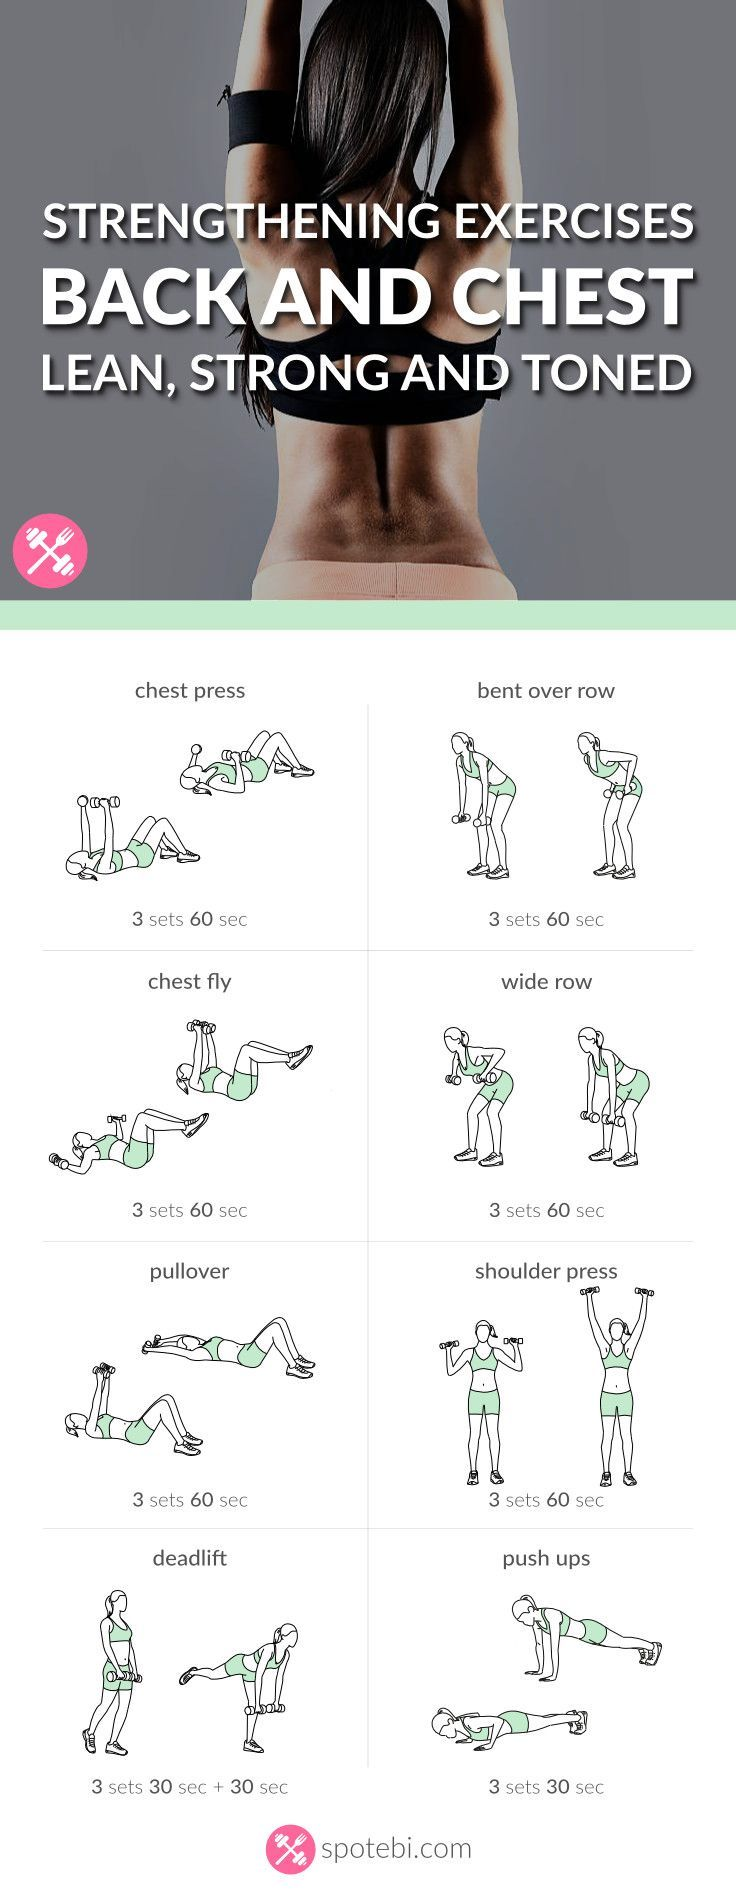 Lift your breasts na Lift your breasts naturally! Try these chest and back strengthening exercises for women to help you tone, firm and lift your chest and improve your posture. www.spotebi.com/... https://www.pinterest.com/pin/133489576432705413/